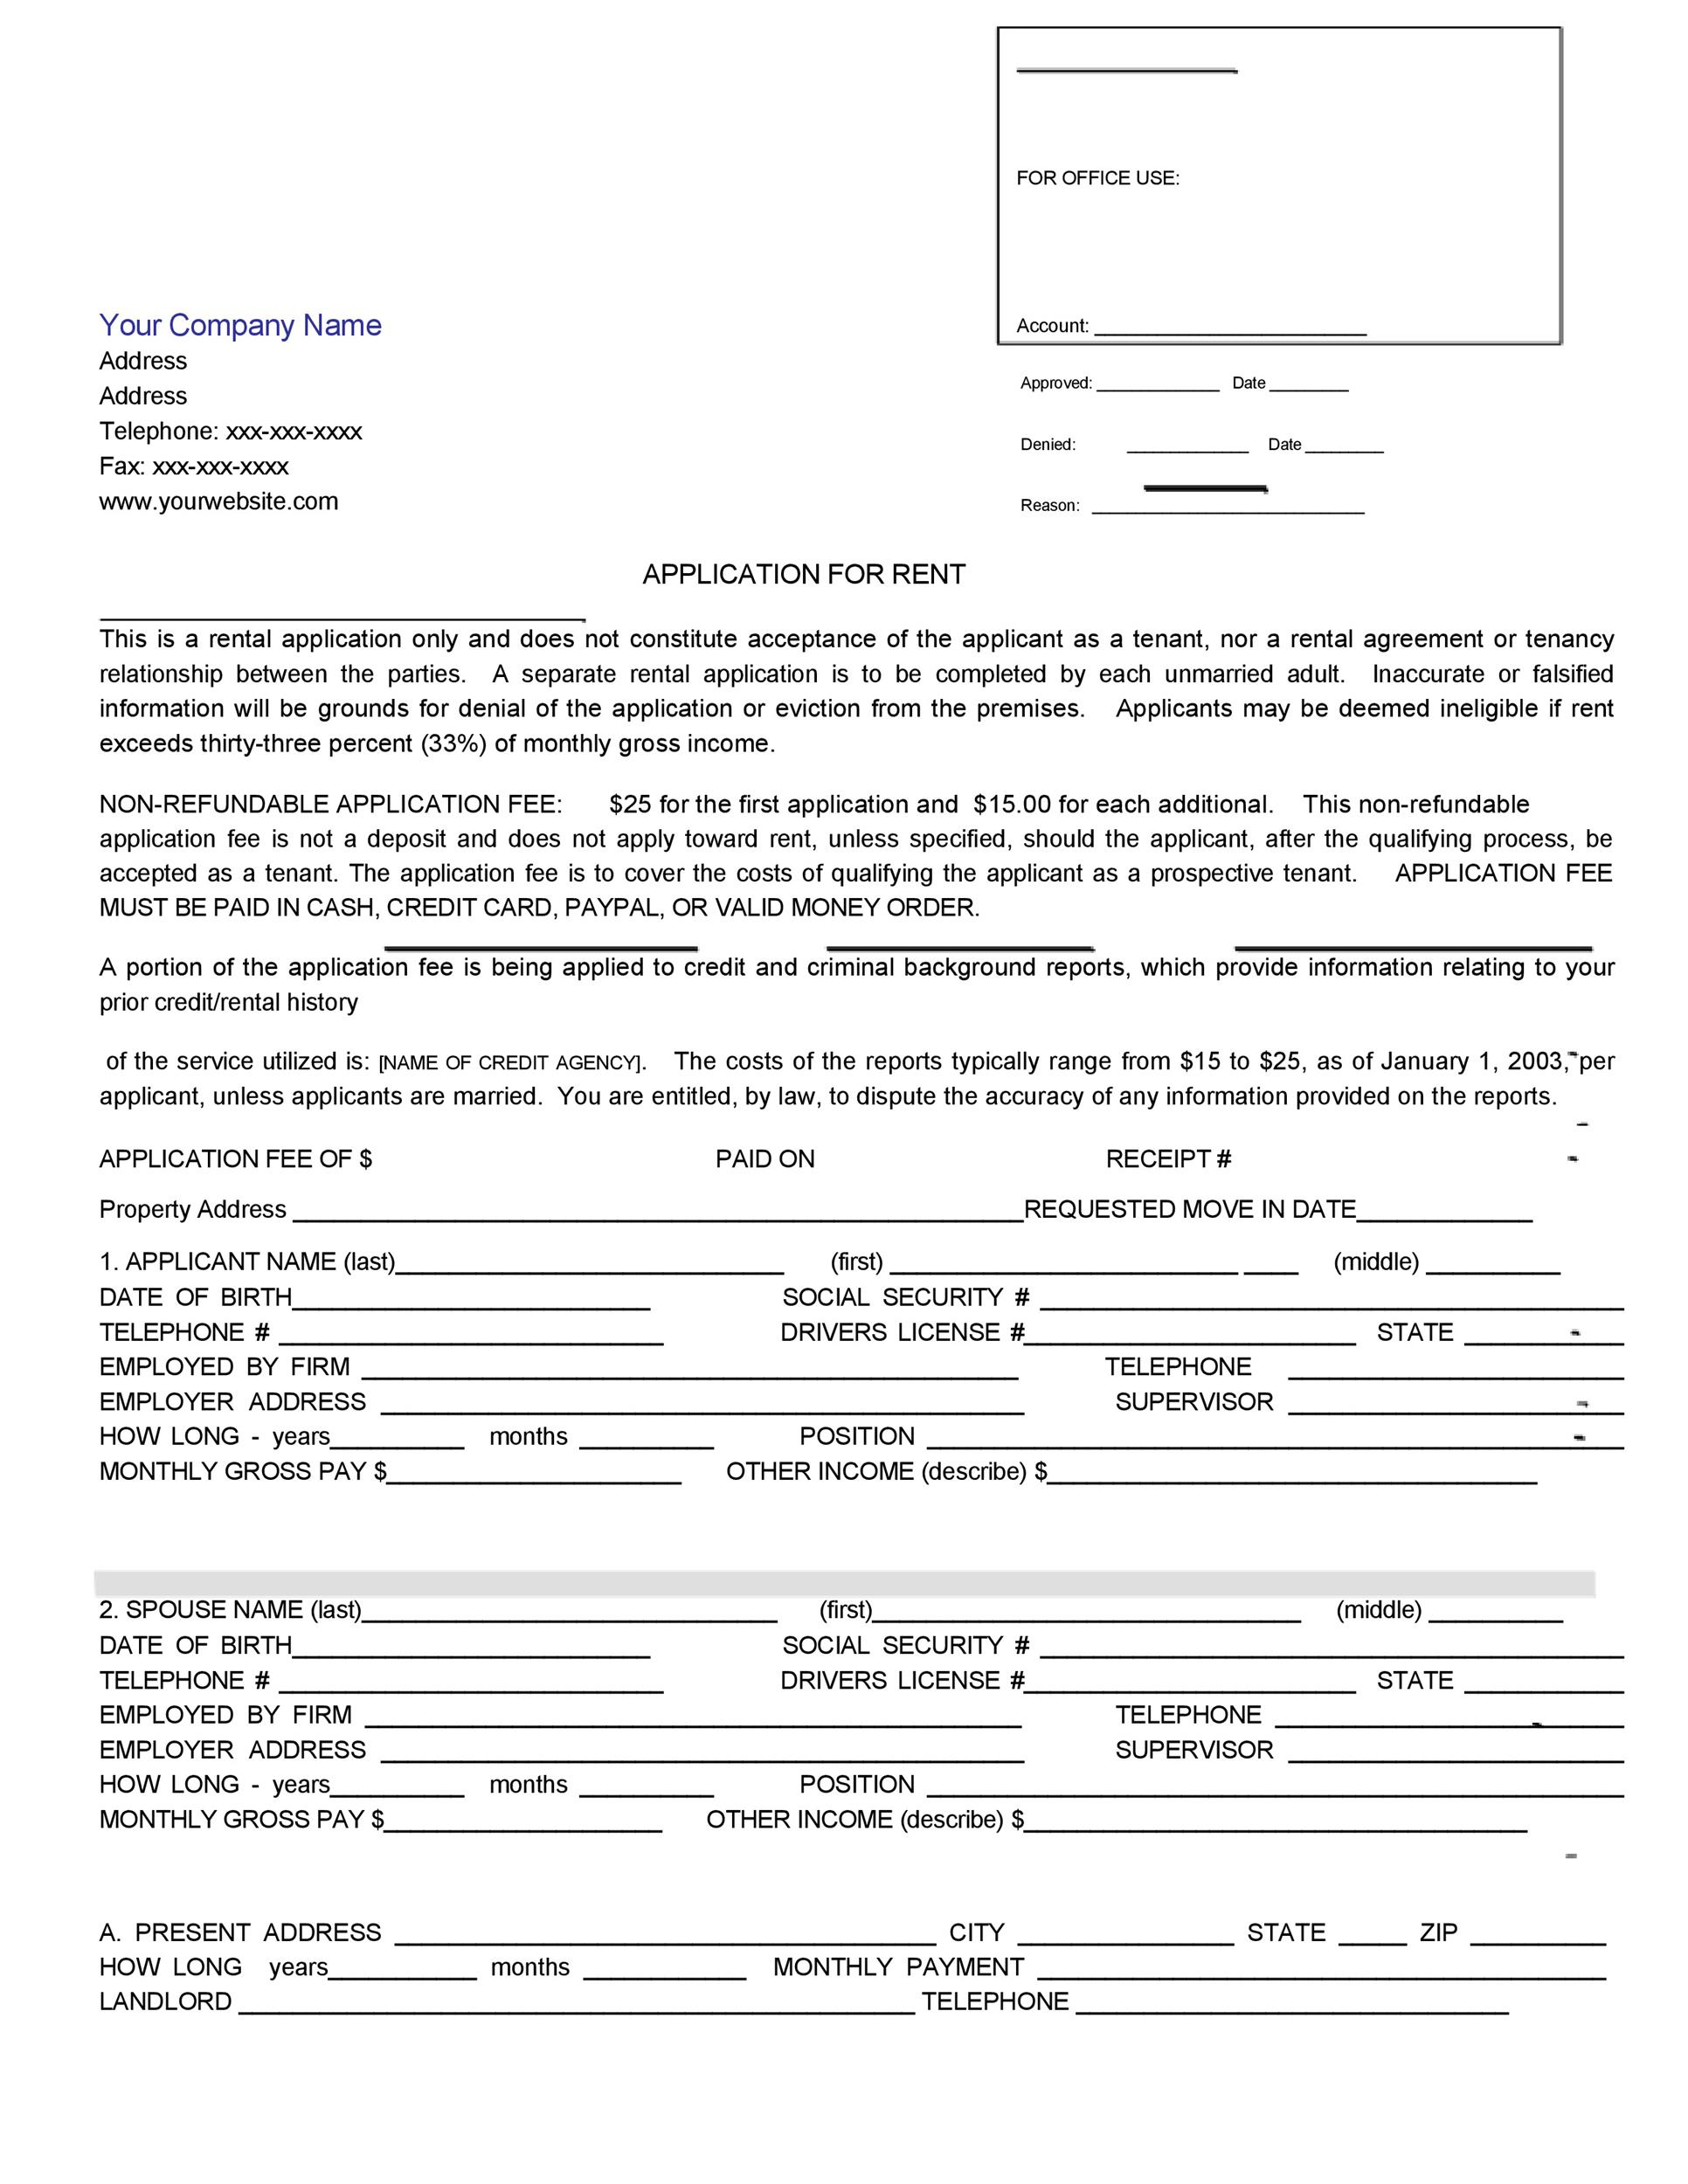 42 Rental Application Forms  Lease Agreement Templates - rental application form in word